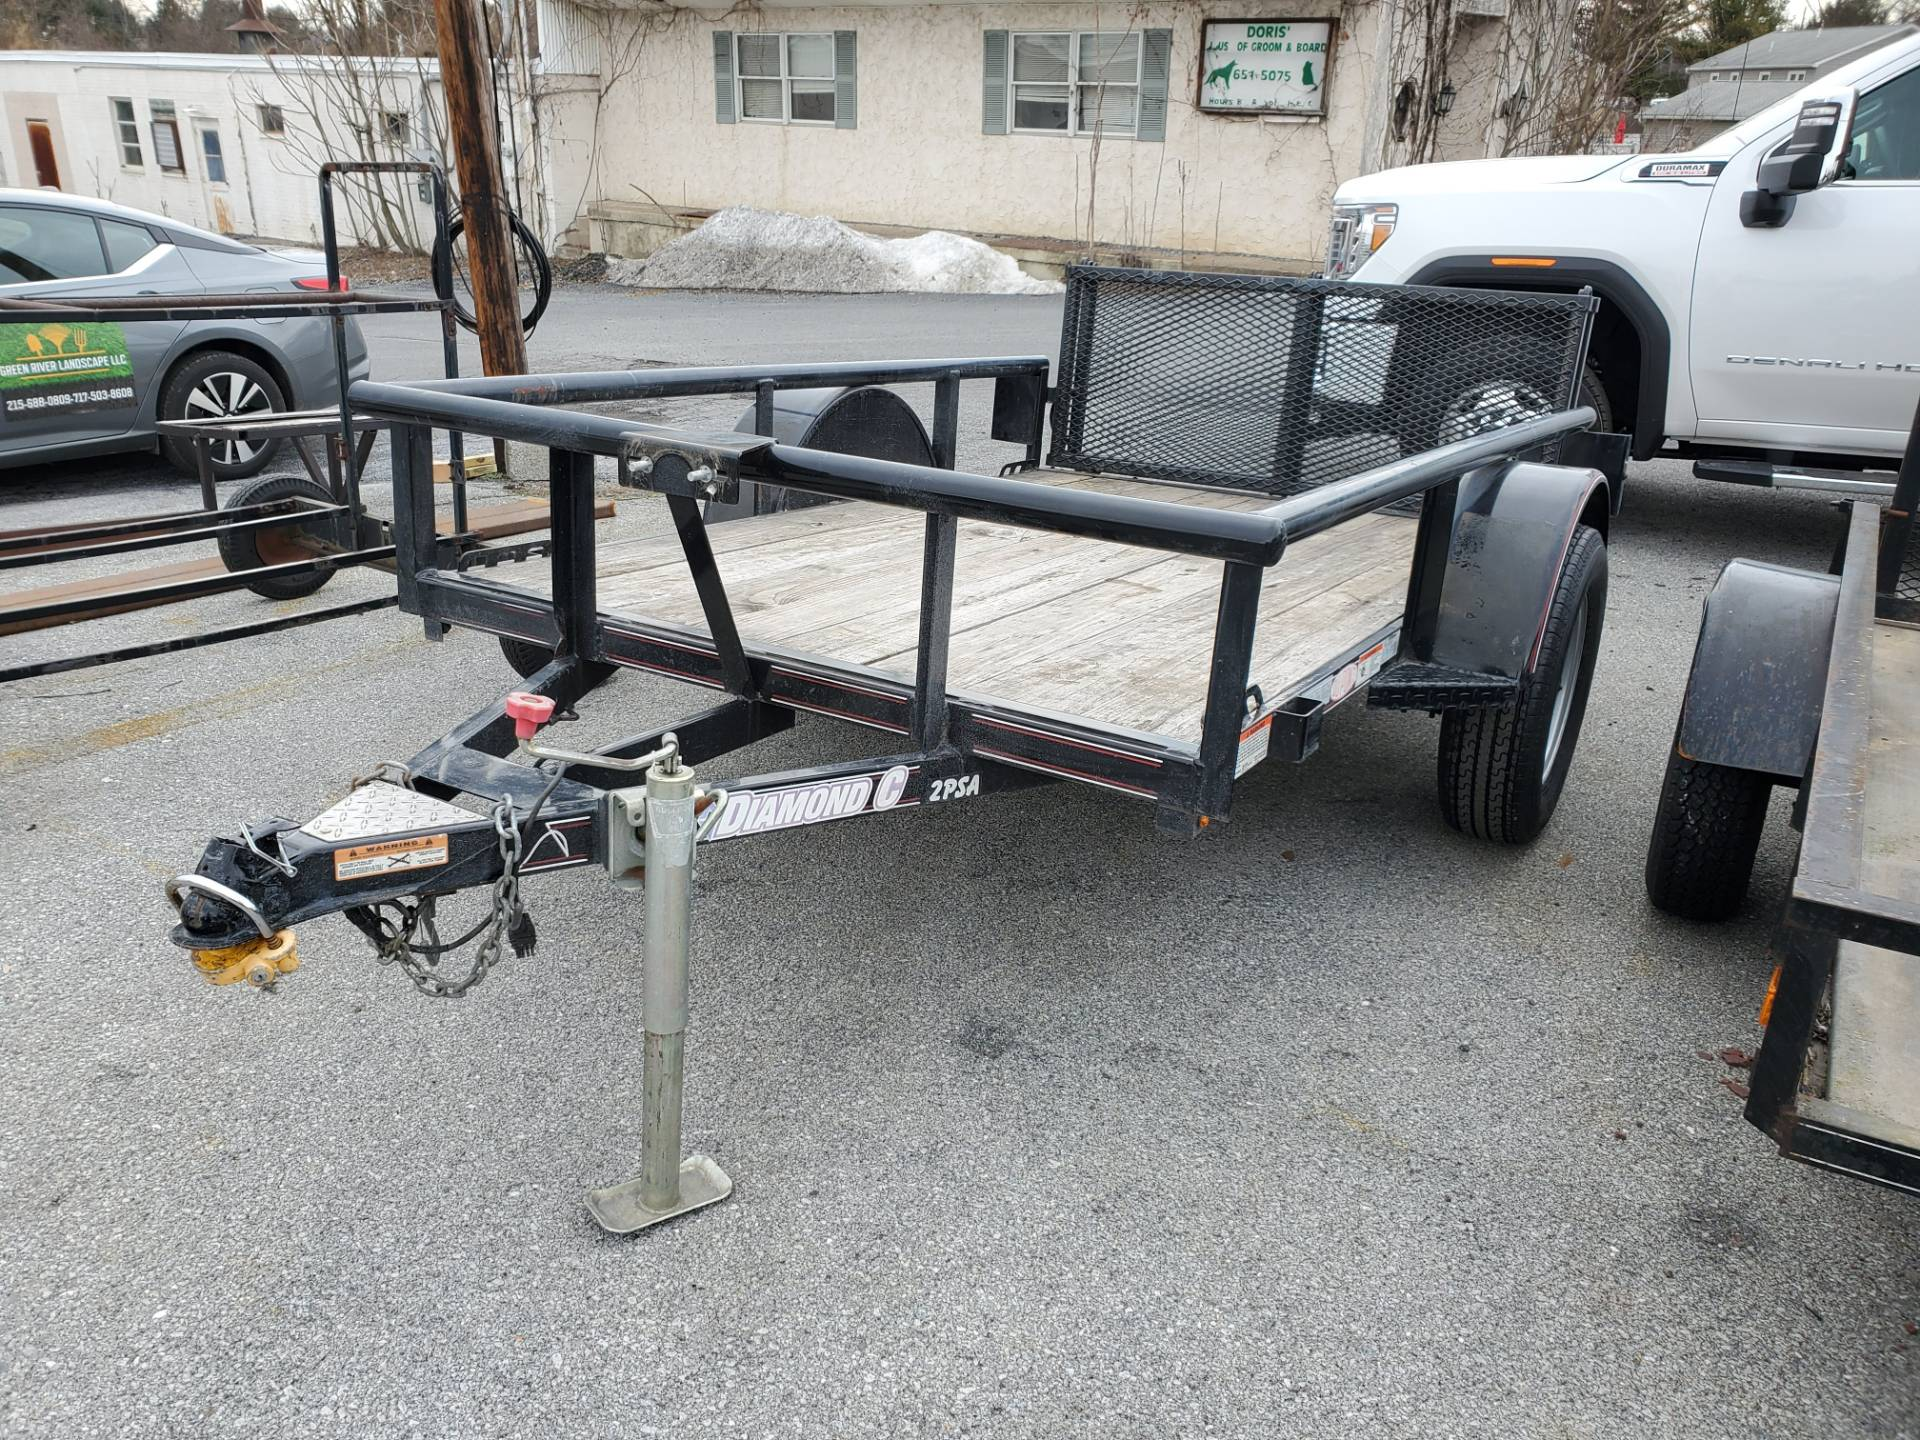 2014 USED UNITS Diamond C 5X8 PSA Utility Trailer in Harrisburg, Pennsylvania - Photo 2